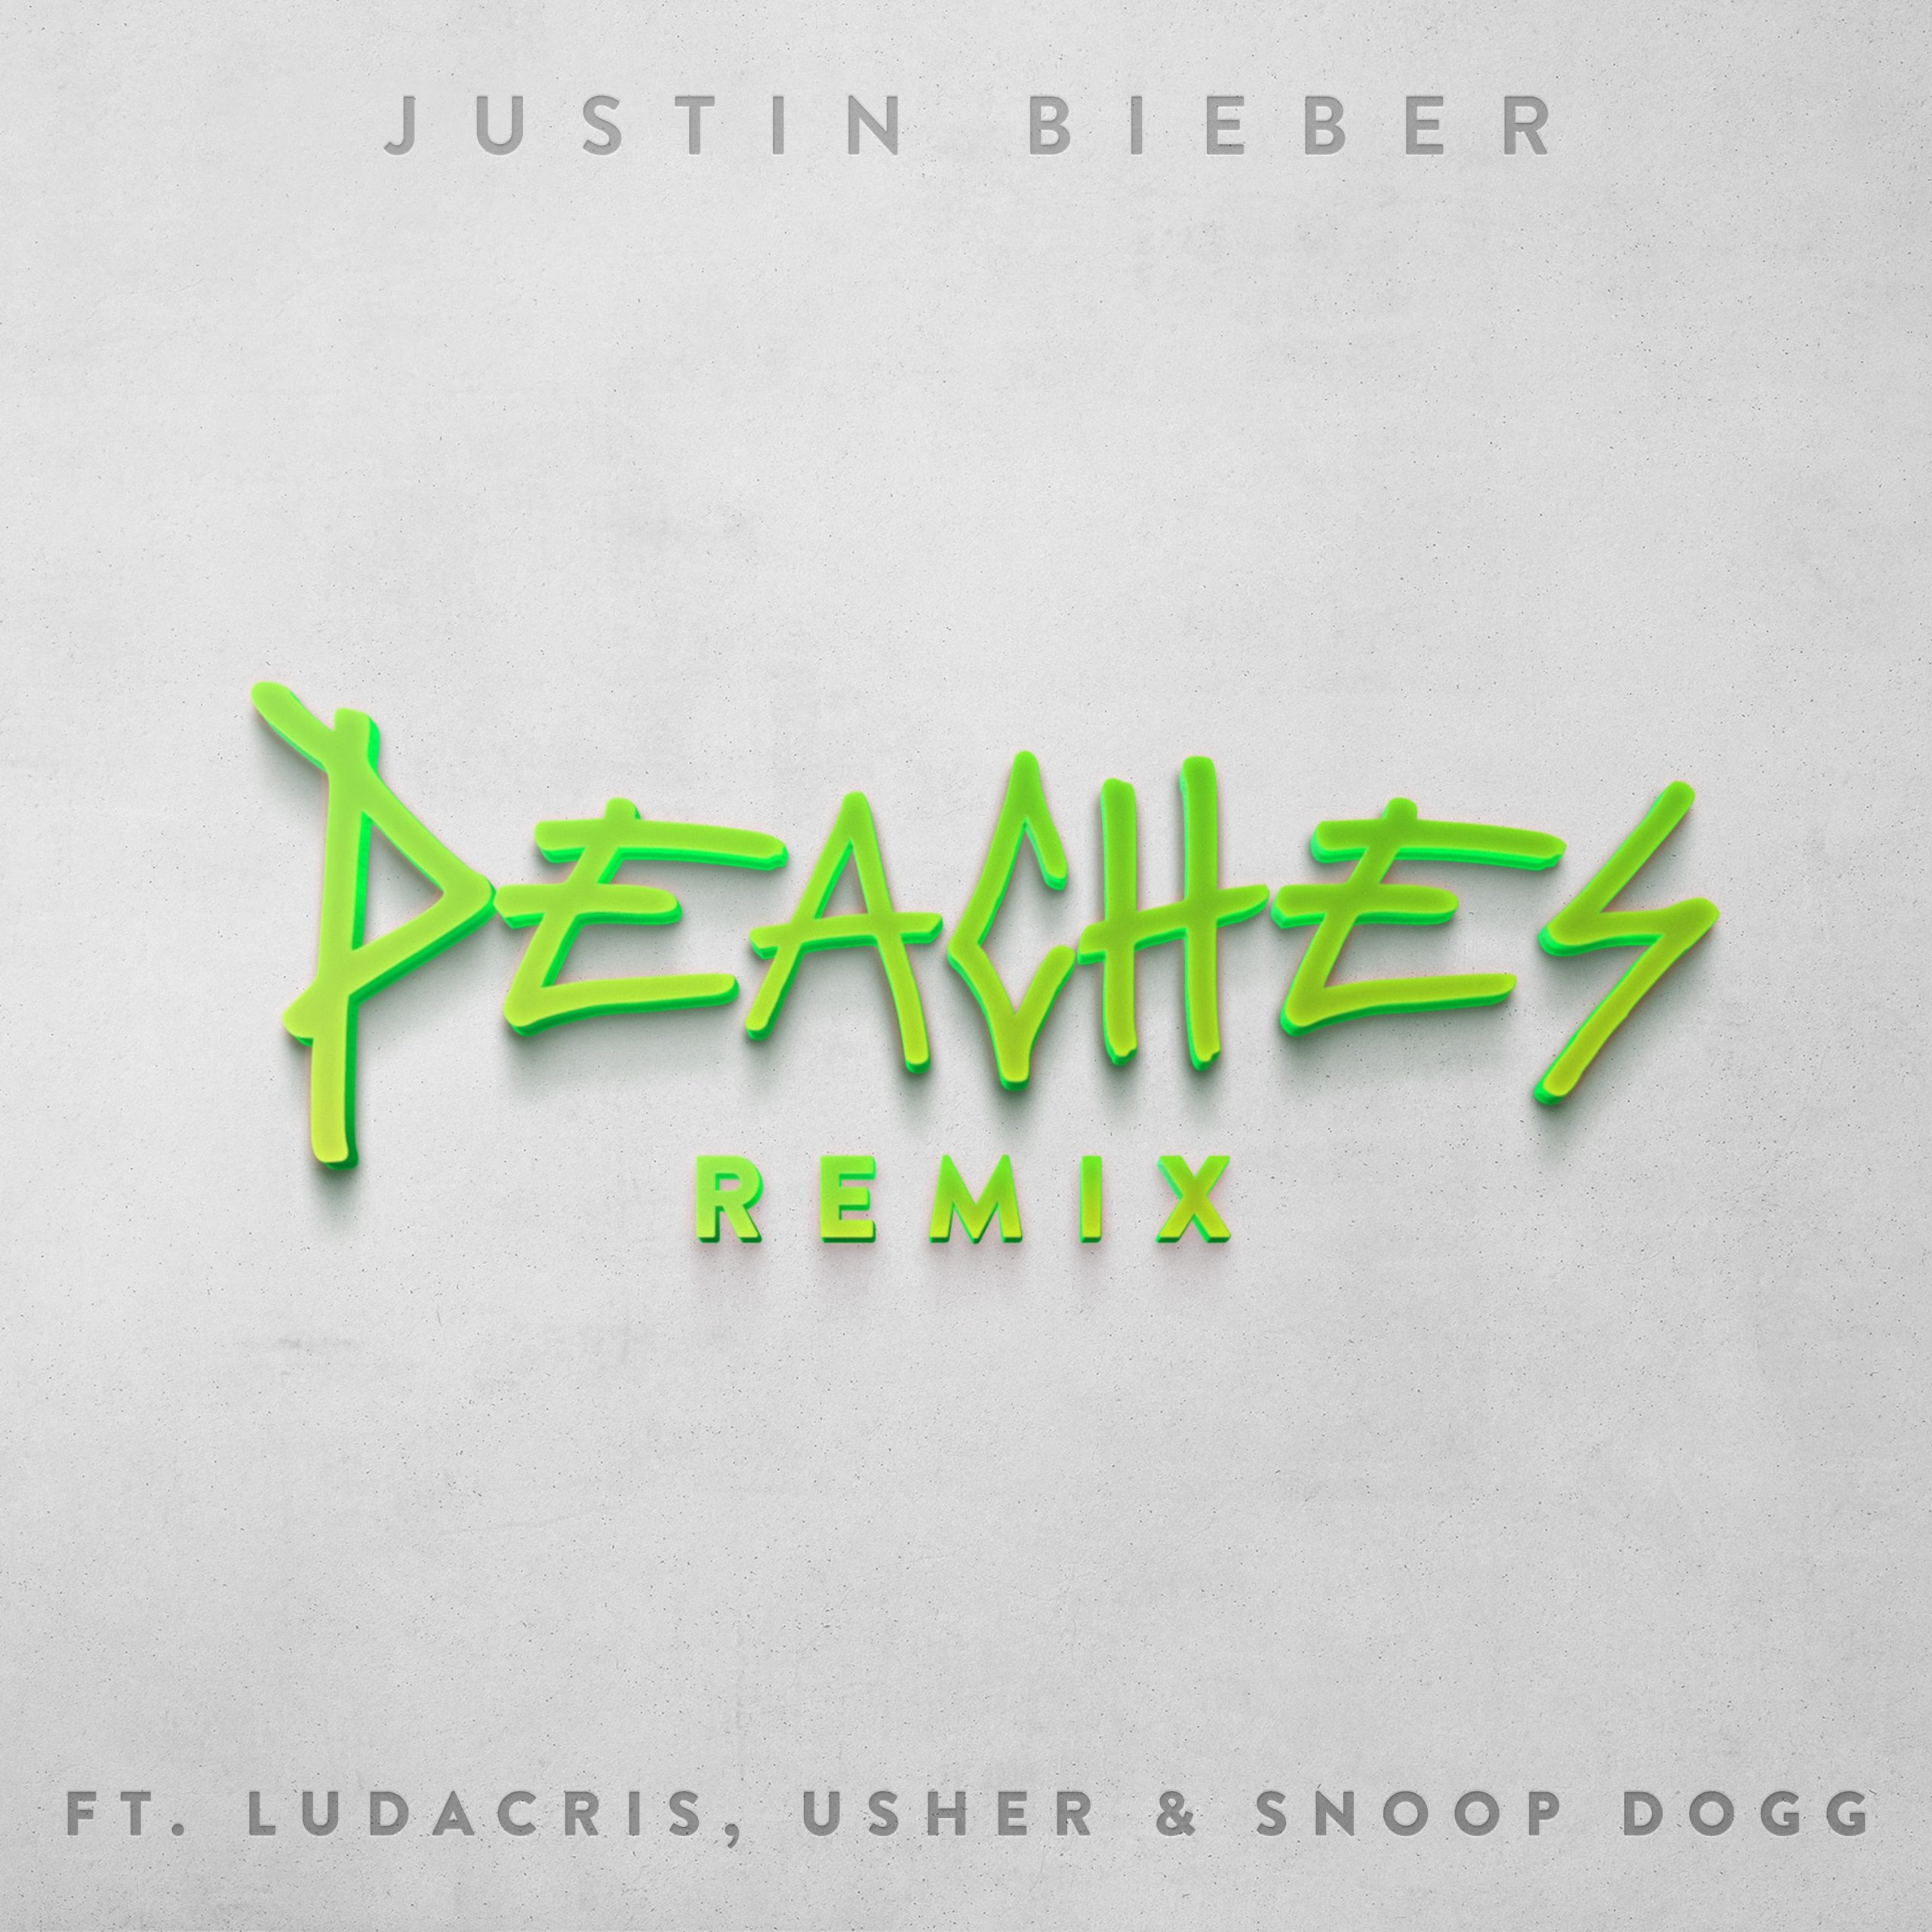 """Snoop Dogg, Usher, and Ludacris Joins Justin Bieber on """"Peaches"""" Remix"""